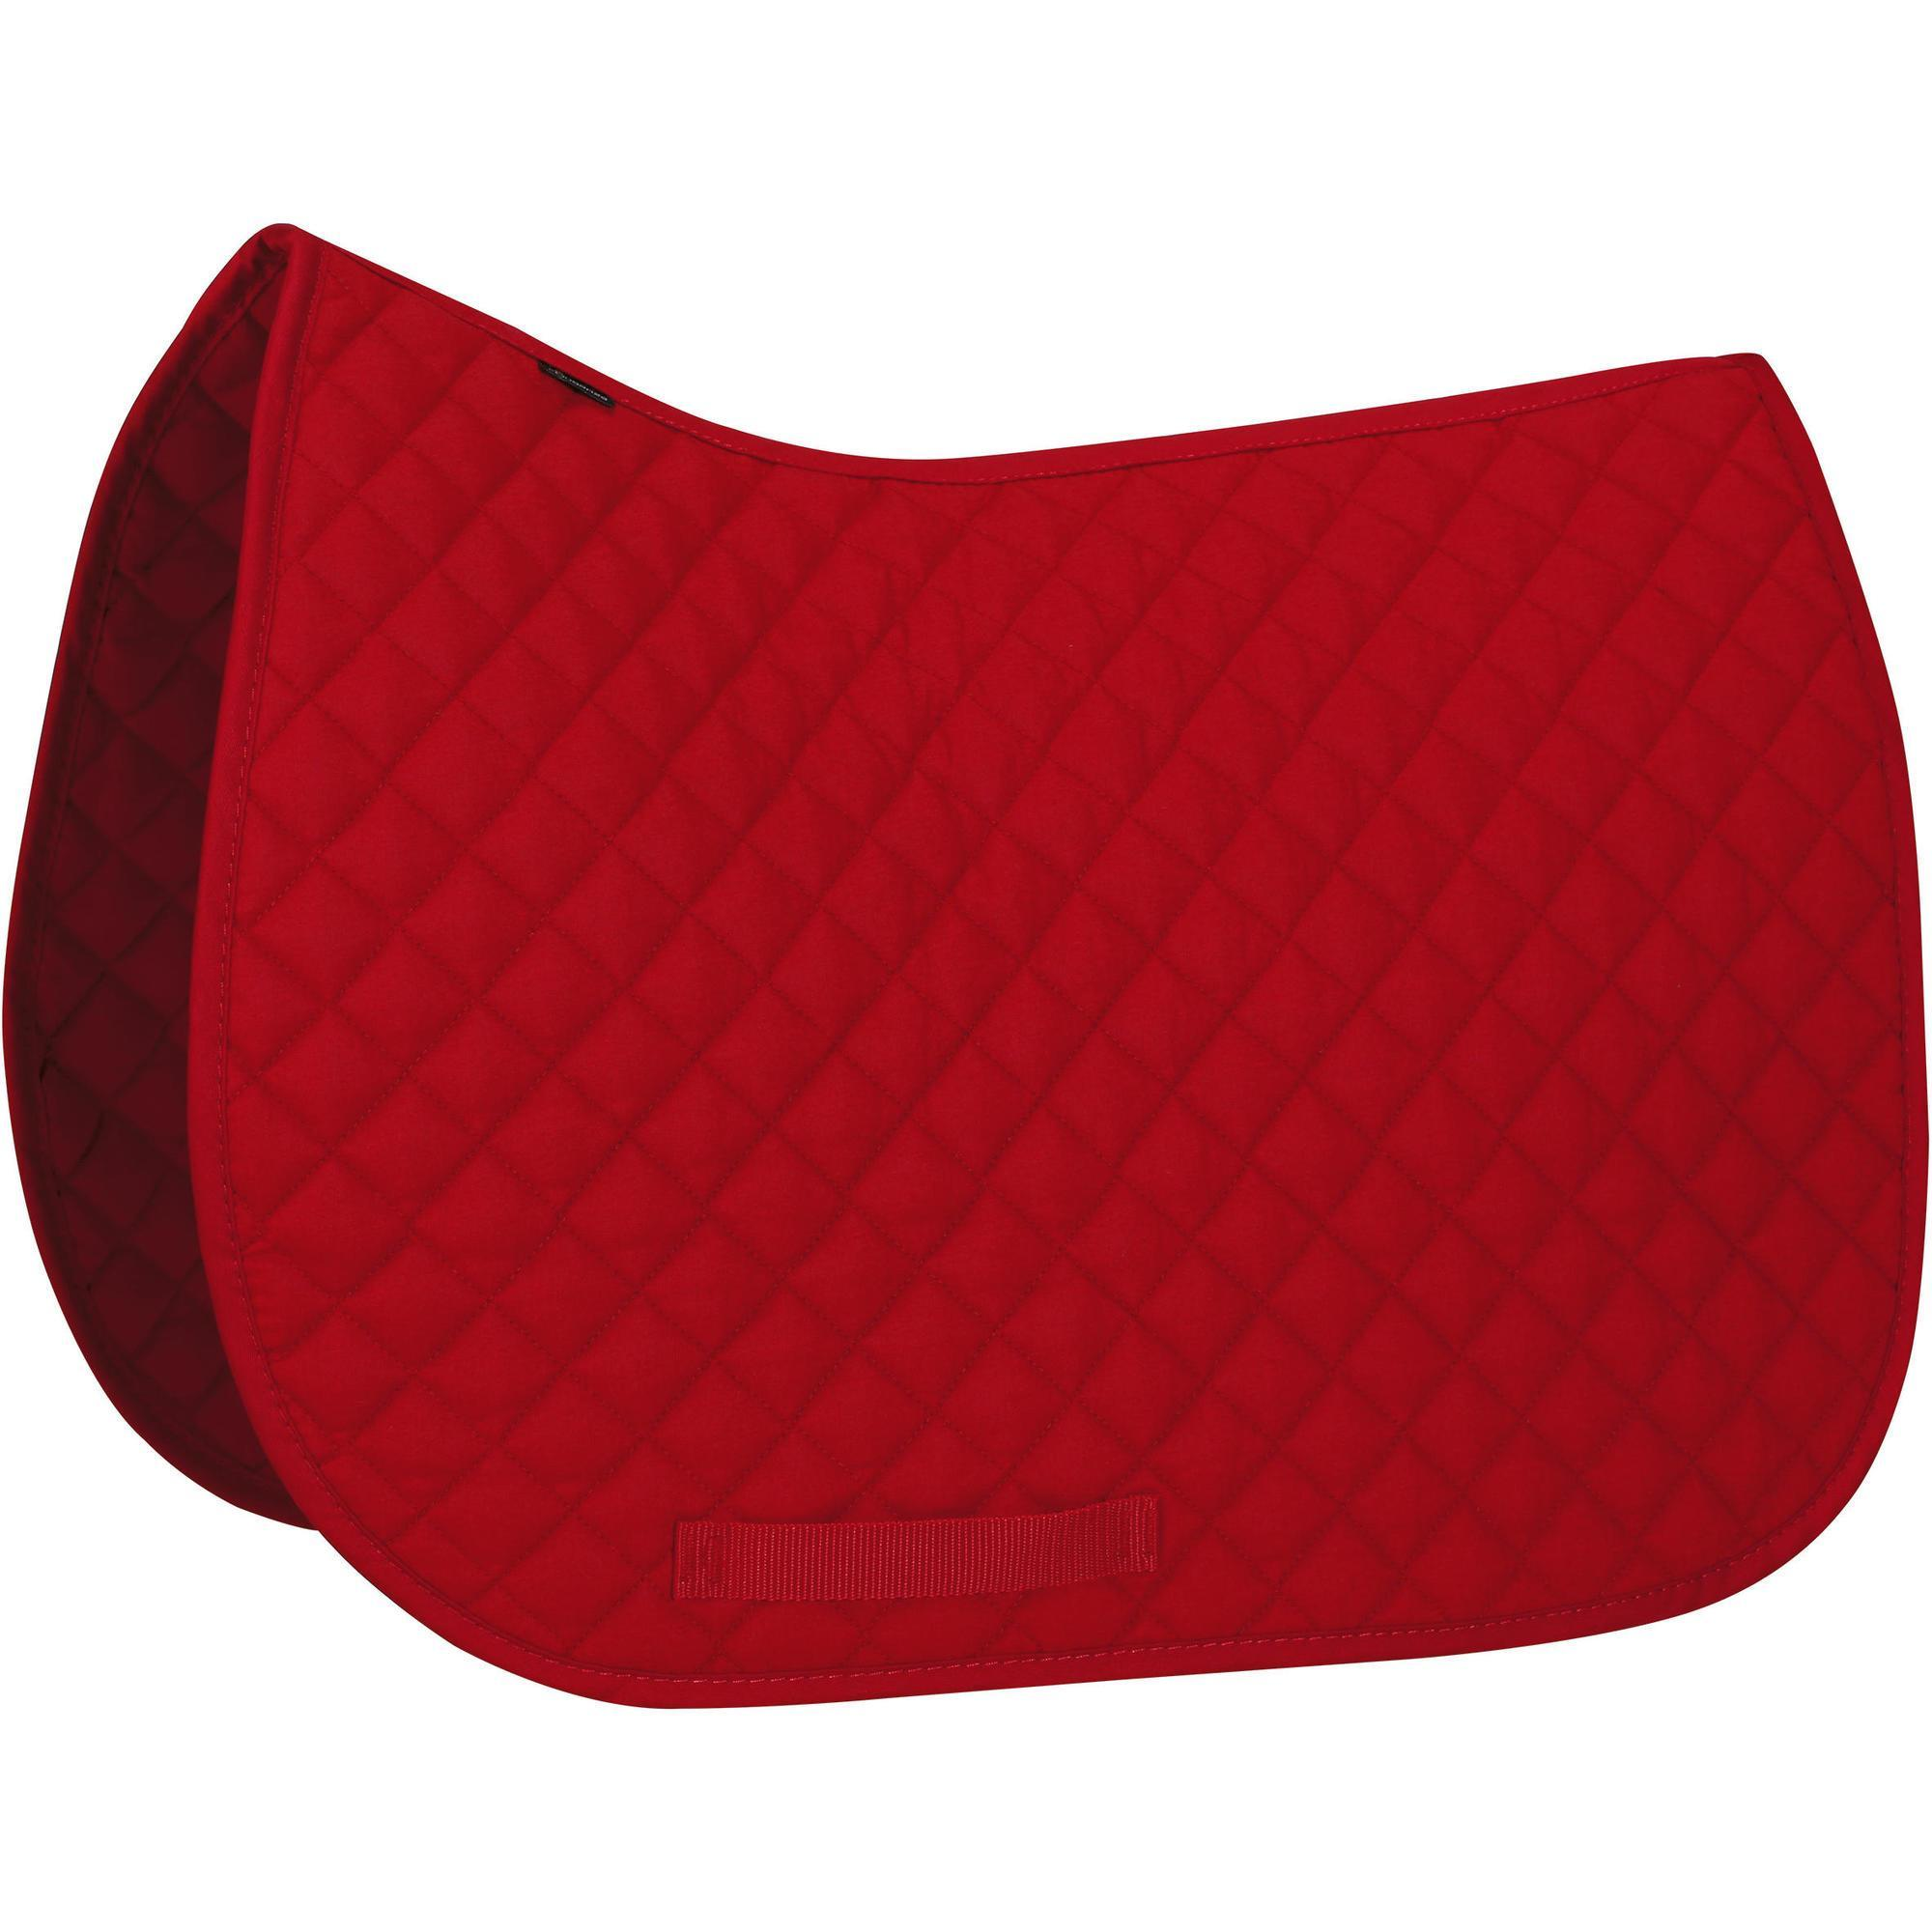 Tapis de selle quitation poney et cheval schooling rouge fouganza - Tapis decathlon equitation ...